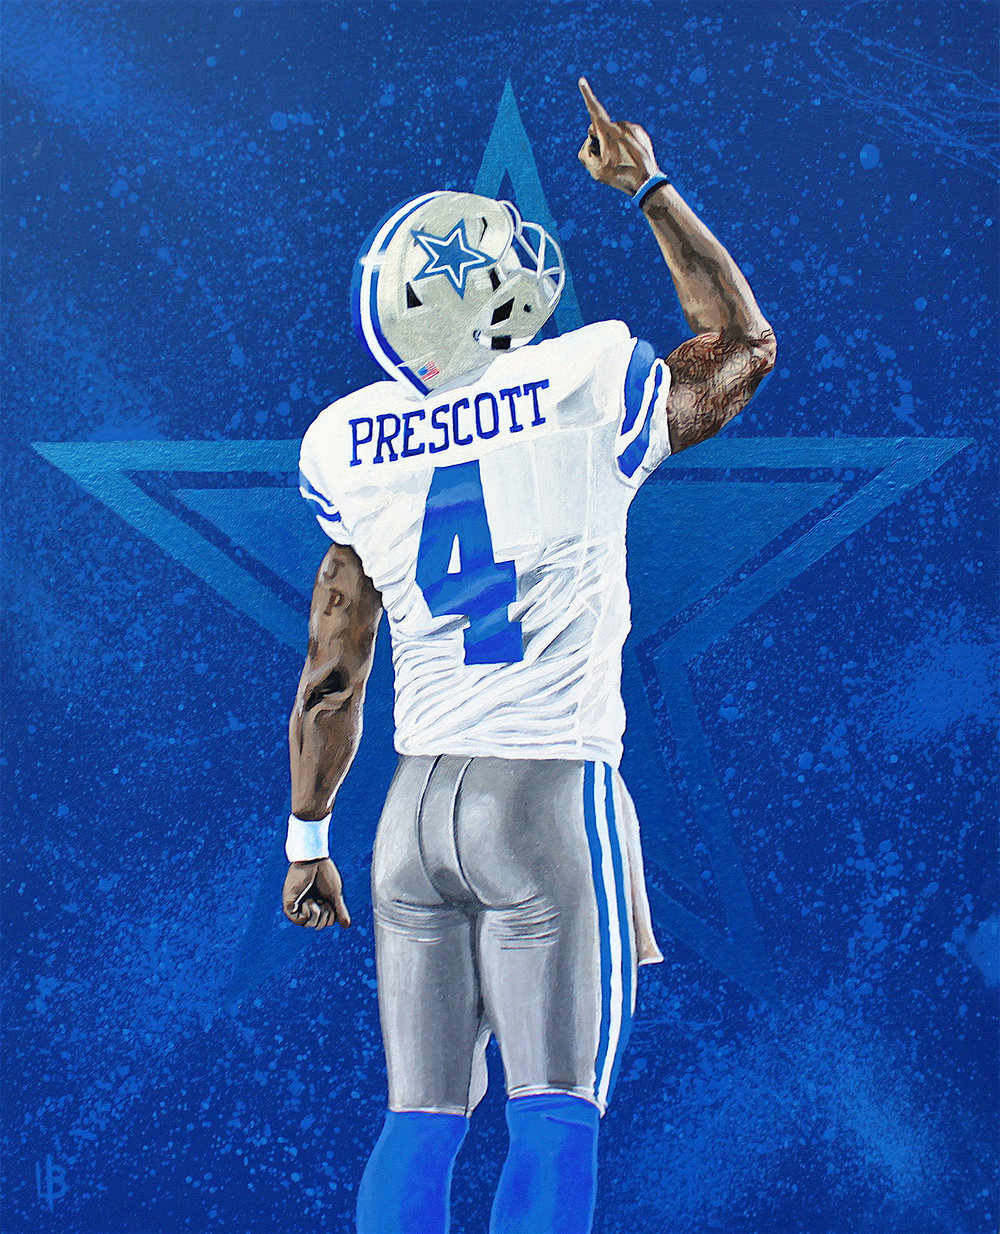 DAK-Prescott-Dallas-cowboys.jpg